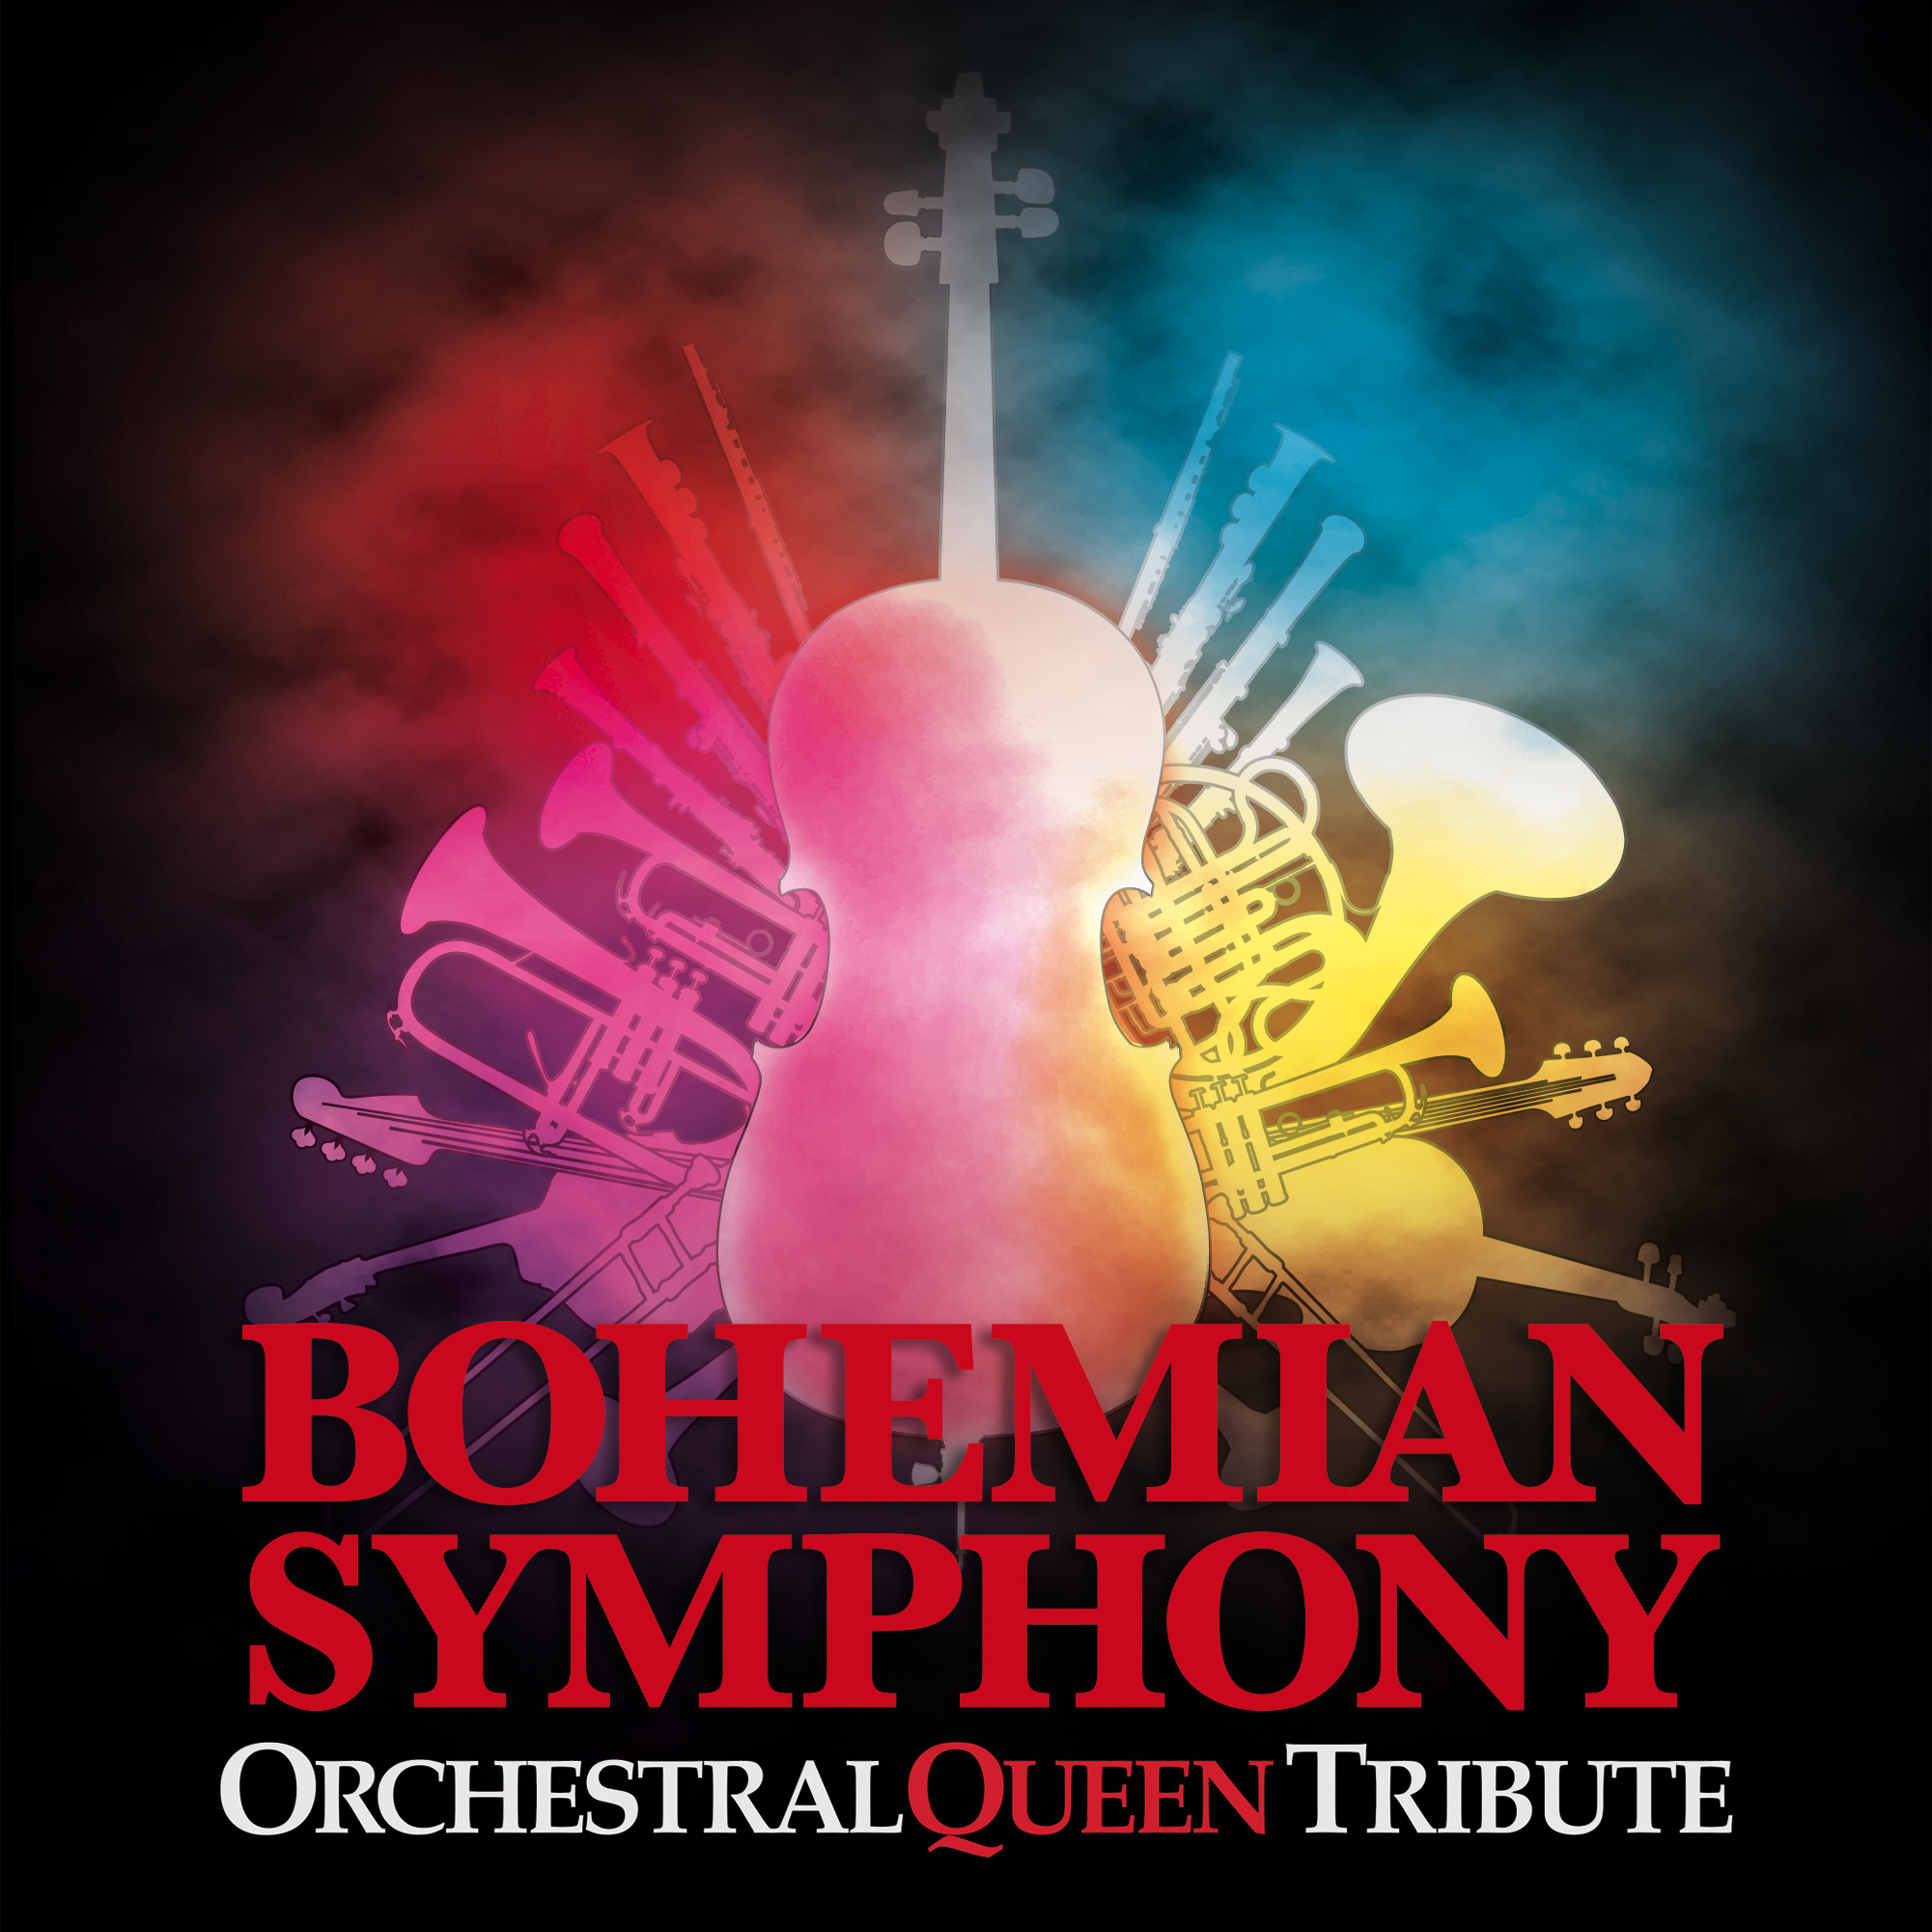 BOHEMIAN SYMPHONY – ORCHESTRAL QUEEN TRIBUTE